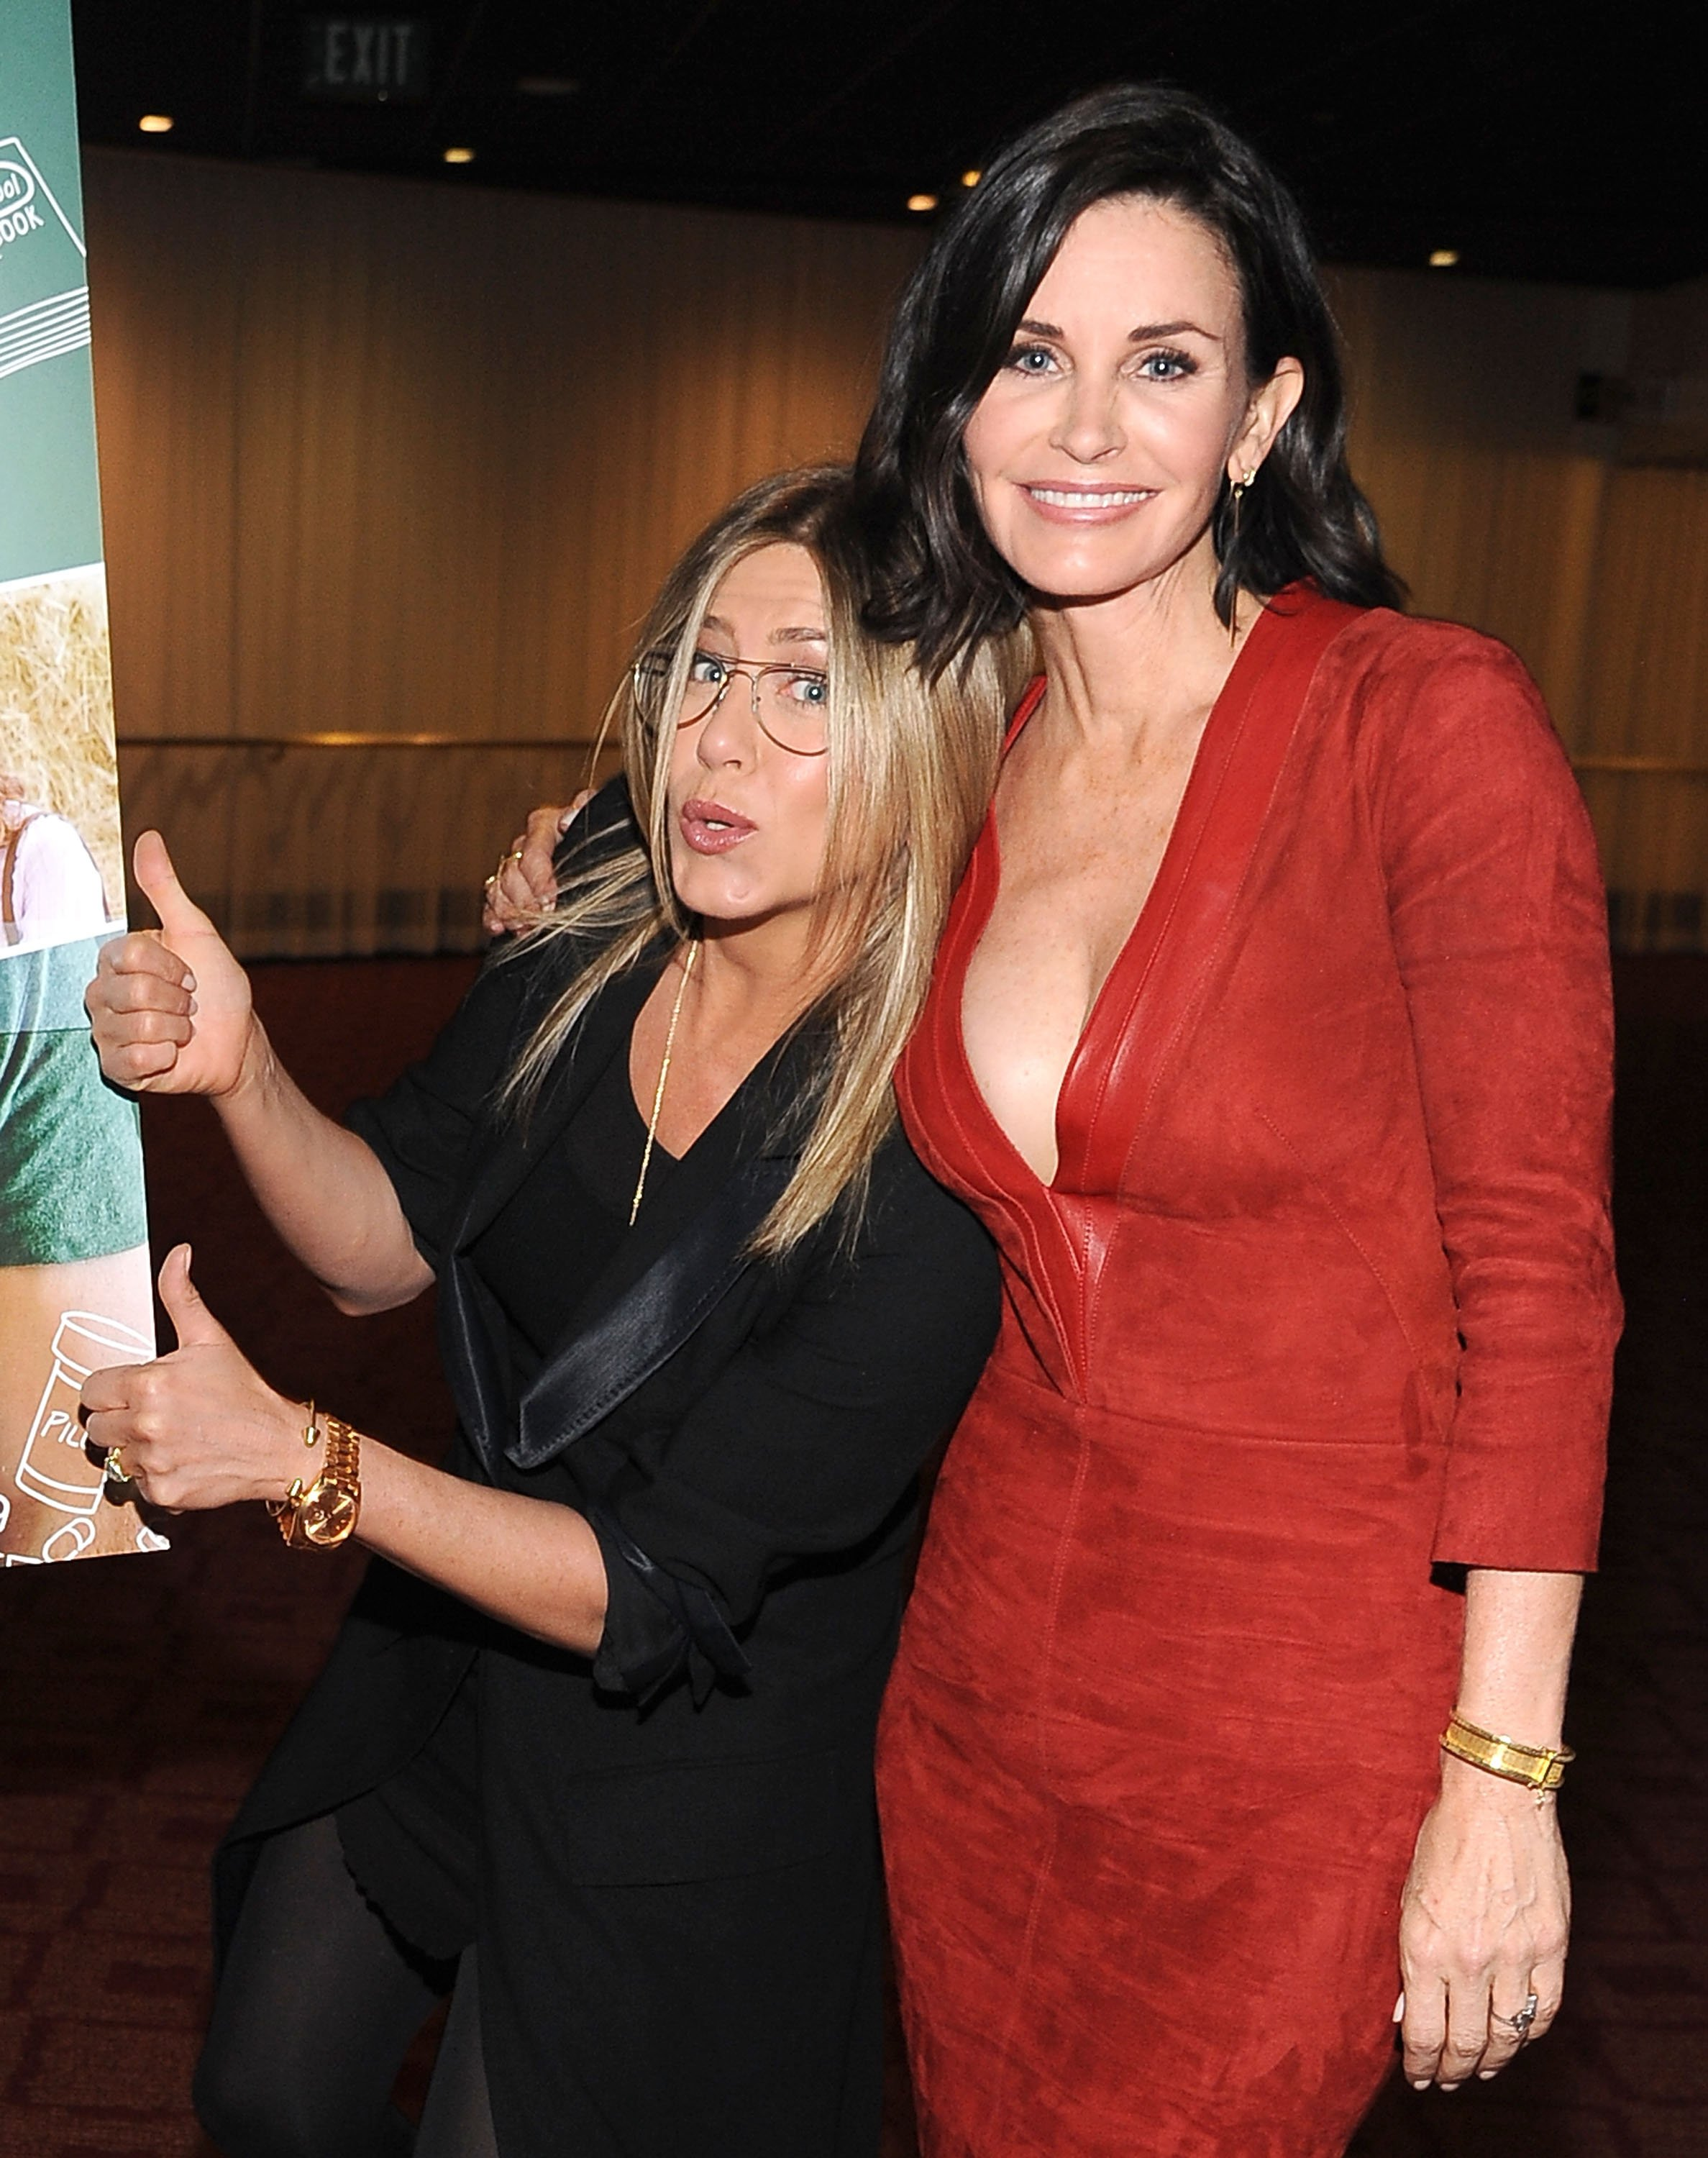 """Jennifer Aniston and director Courteney Cox attend the Los Angeles Special Screening of """"Just Before I Go"""" at ArcLight Hollywood on April 20, 2015 in Hollywood, California.   Source: Getty Images"""